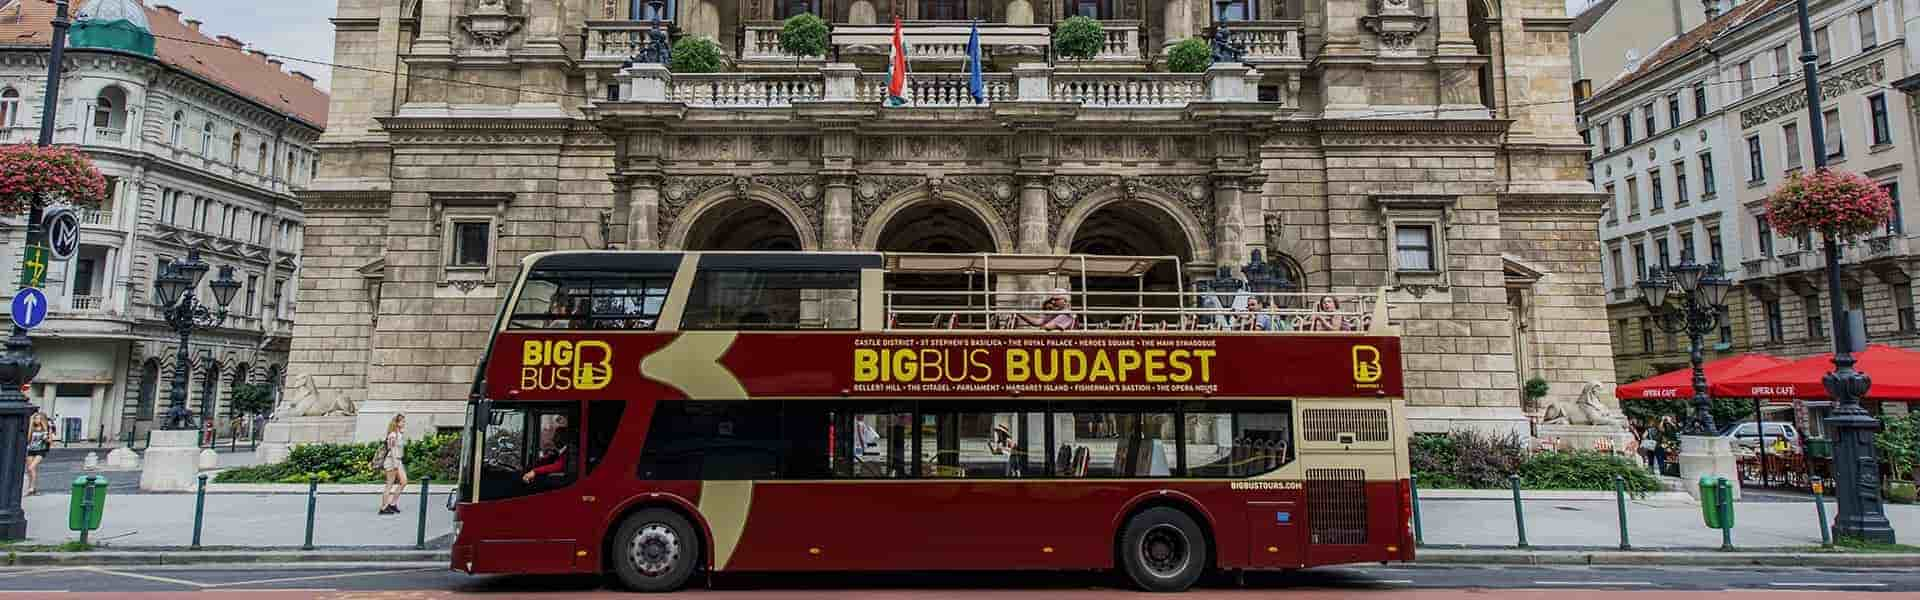 Big bus tours touring around Budapest Attractions.